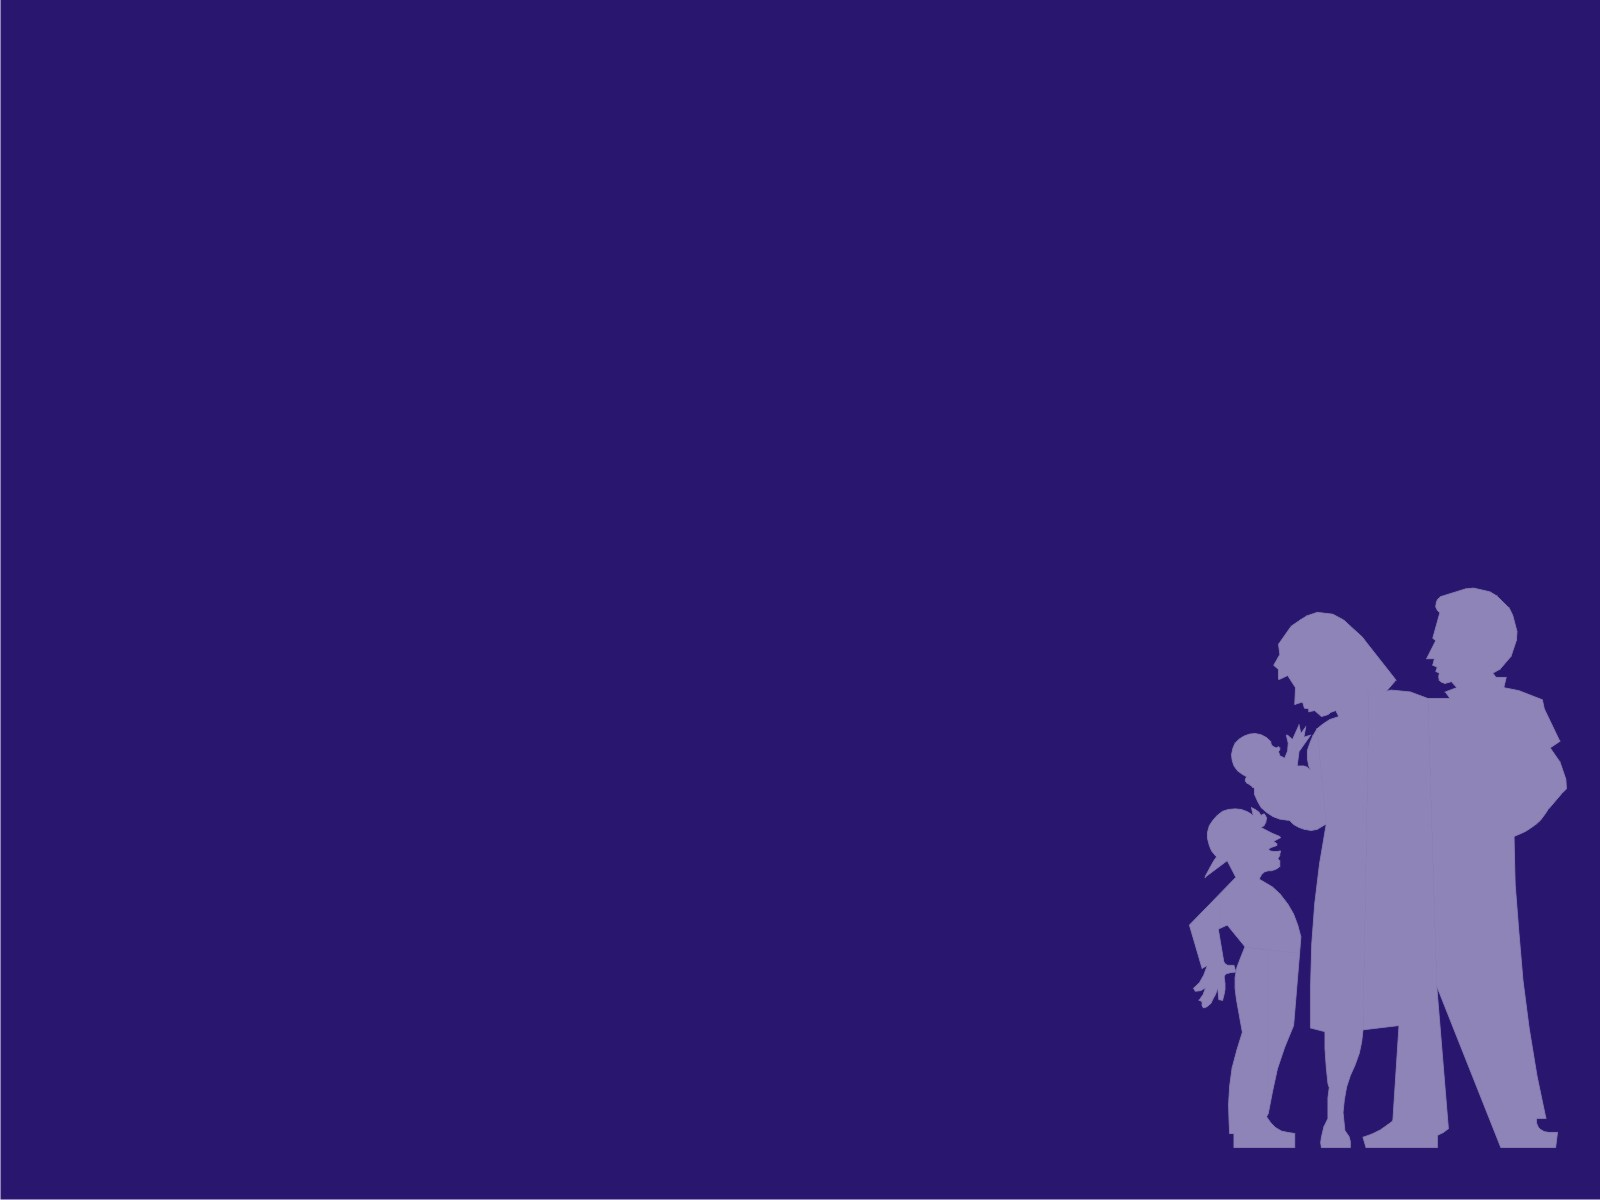 Family powerpoint portrait Background Wallpaper for PowerPoint 1600x1200